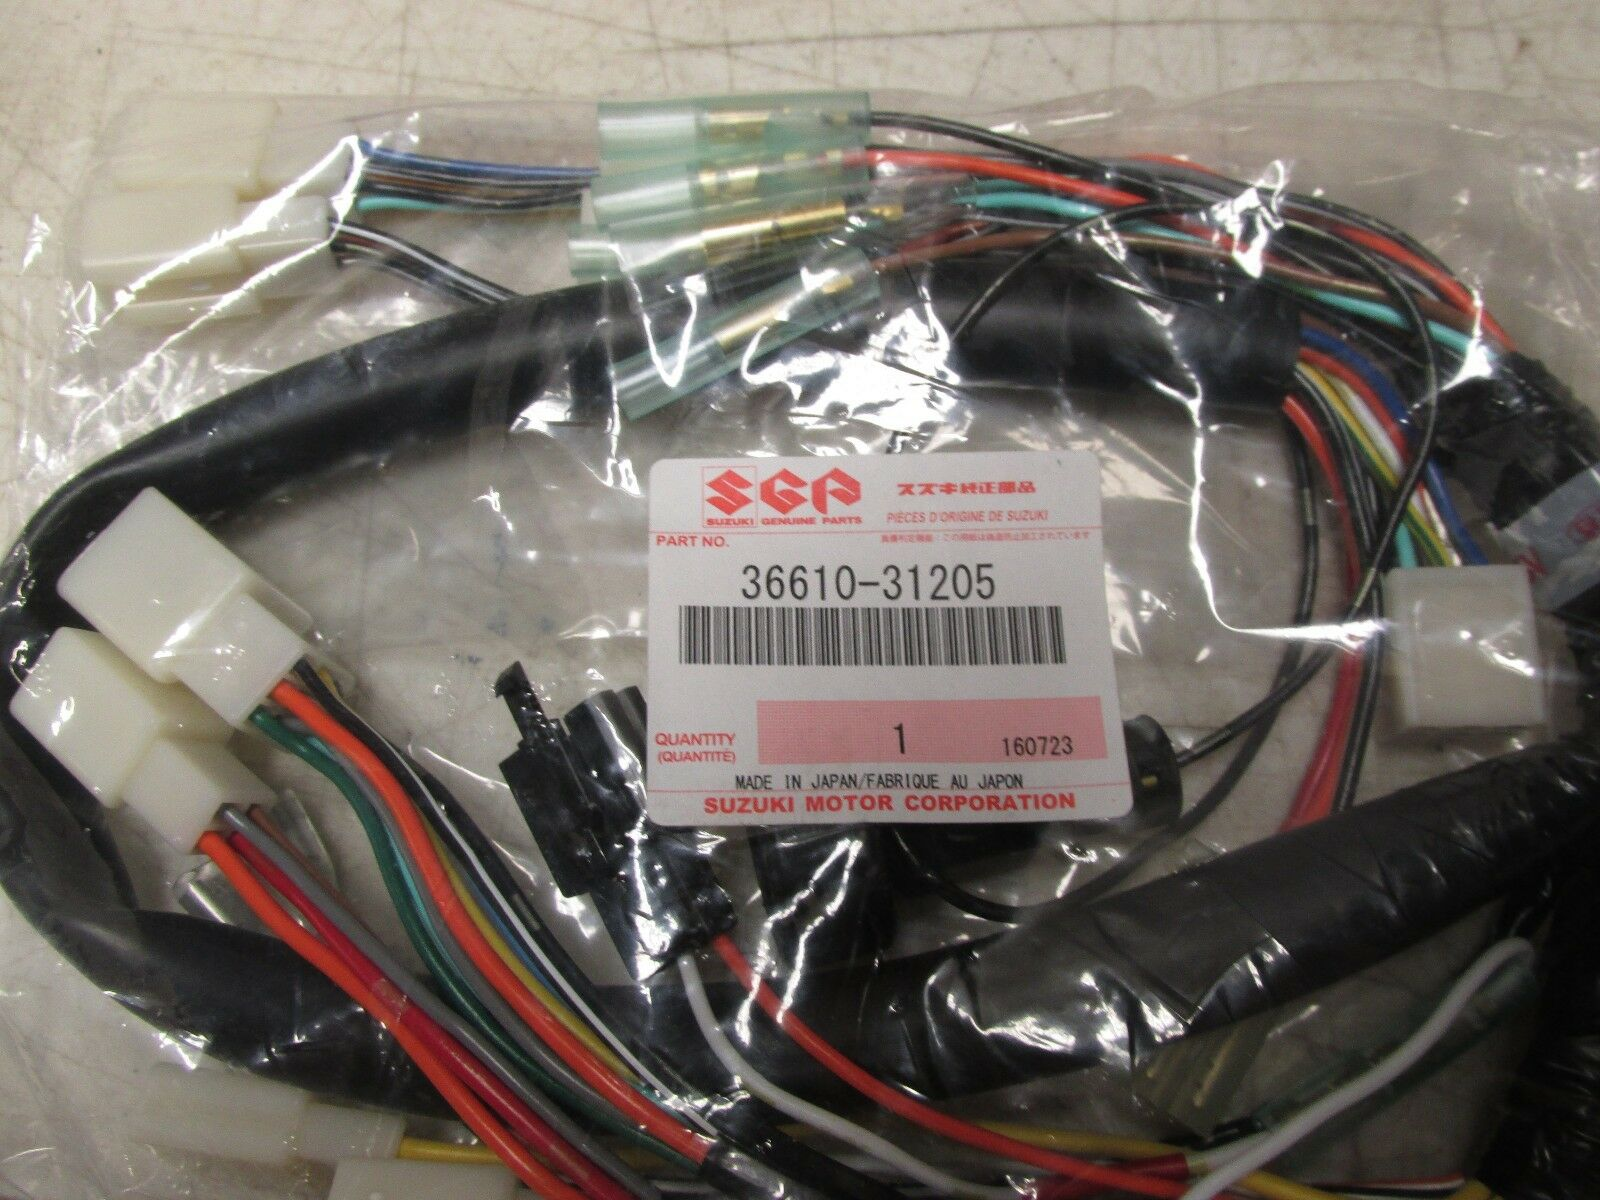 Suzuki Gt750 Gt 750 Electrical Wire Main Wiring Harness 10842 1 Of See More